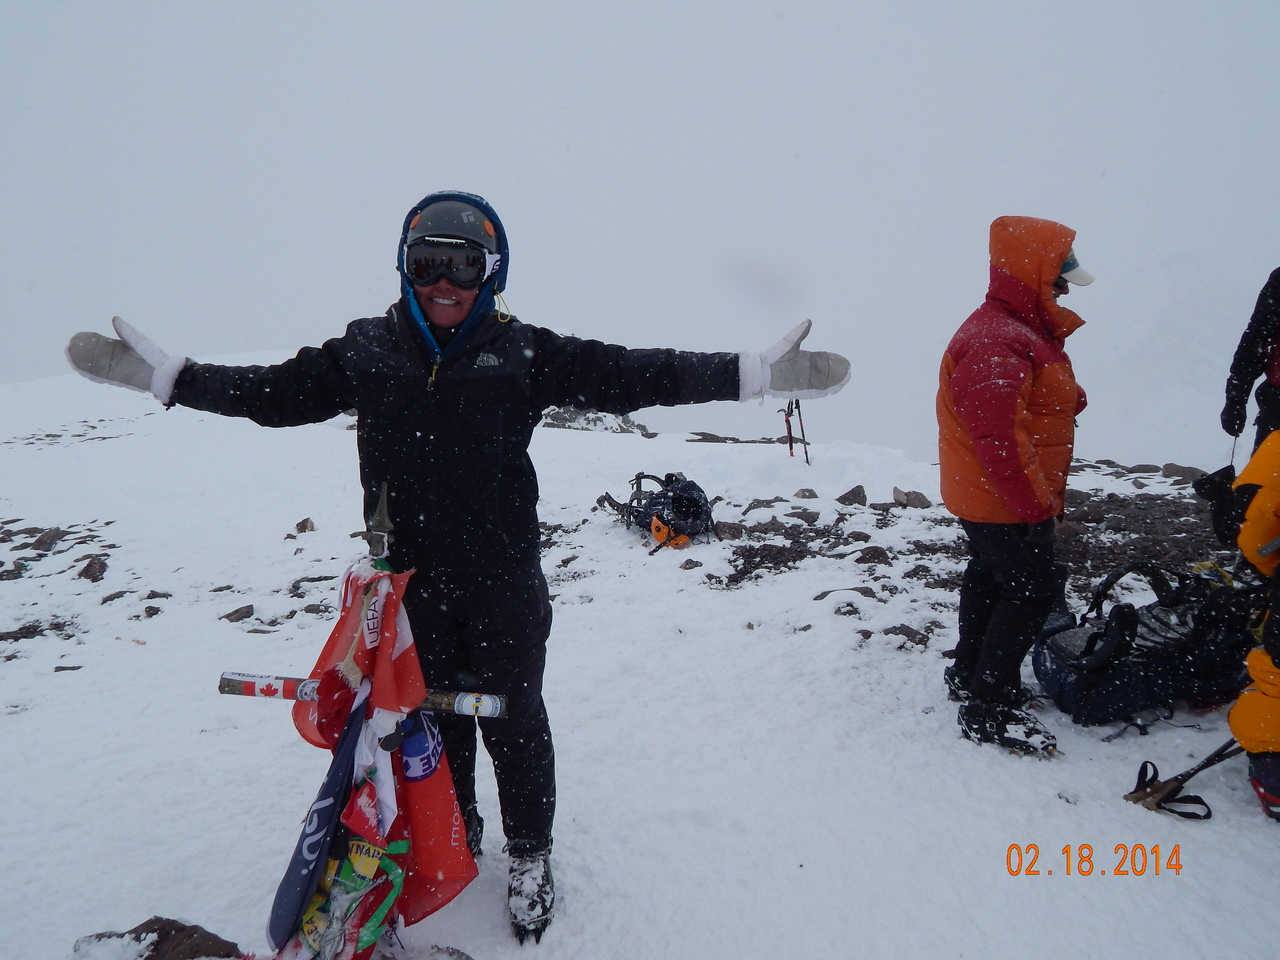 22,841 foot Summit. The cross signifies the real summit.